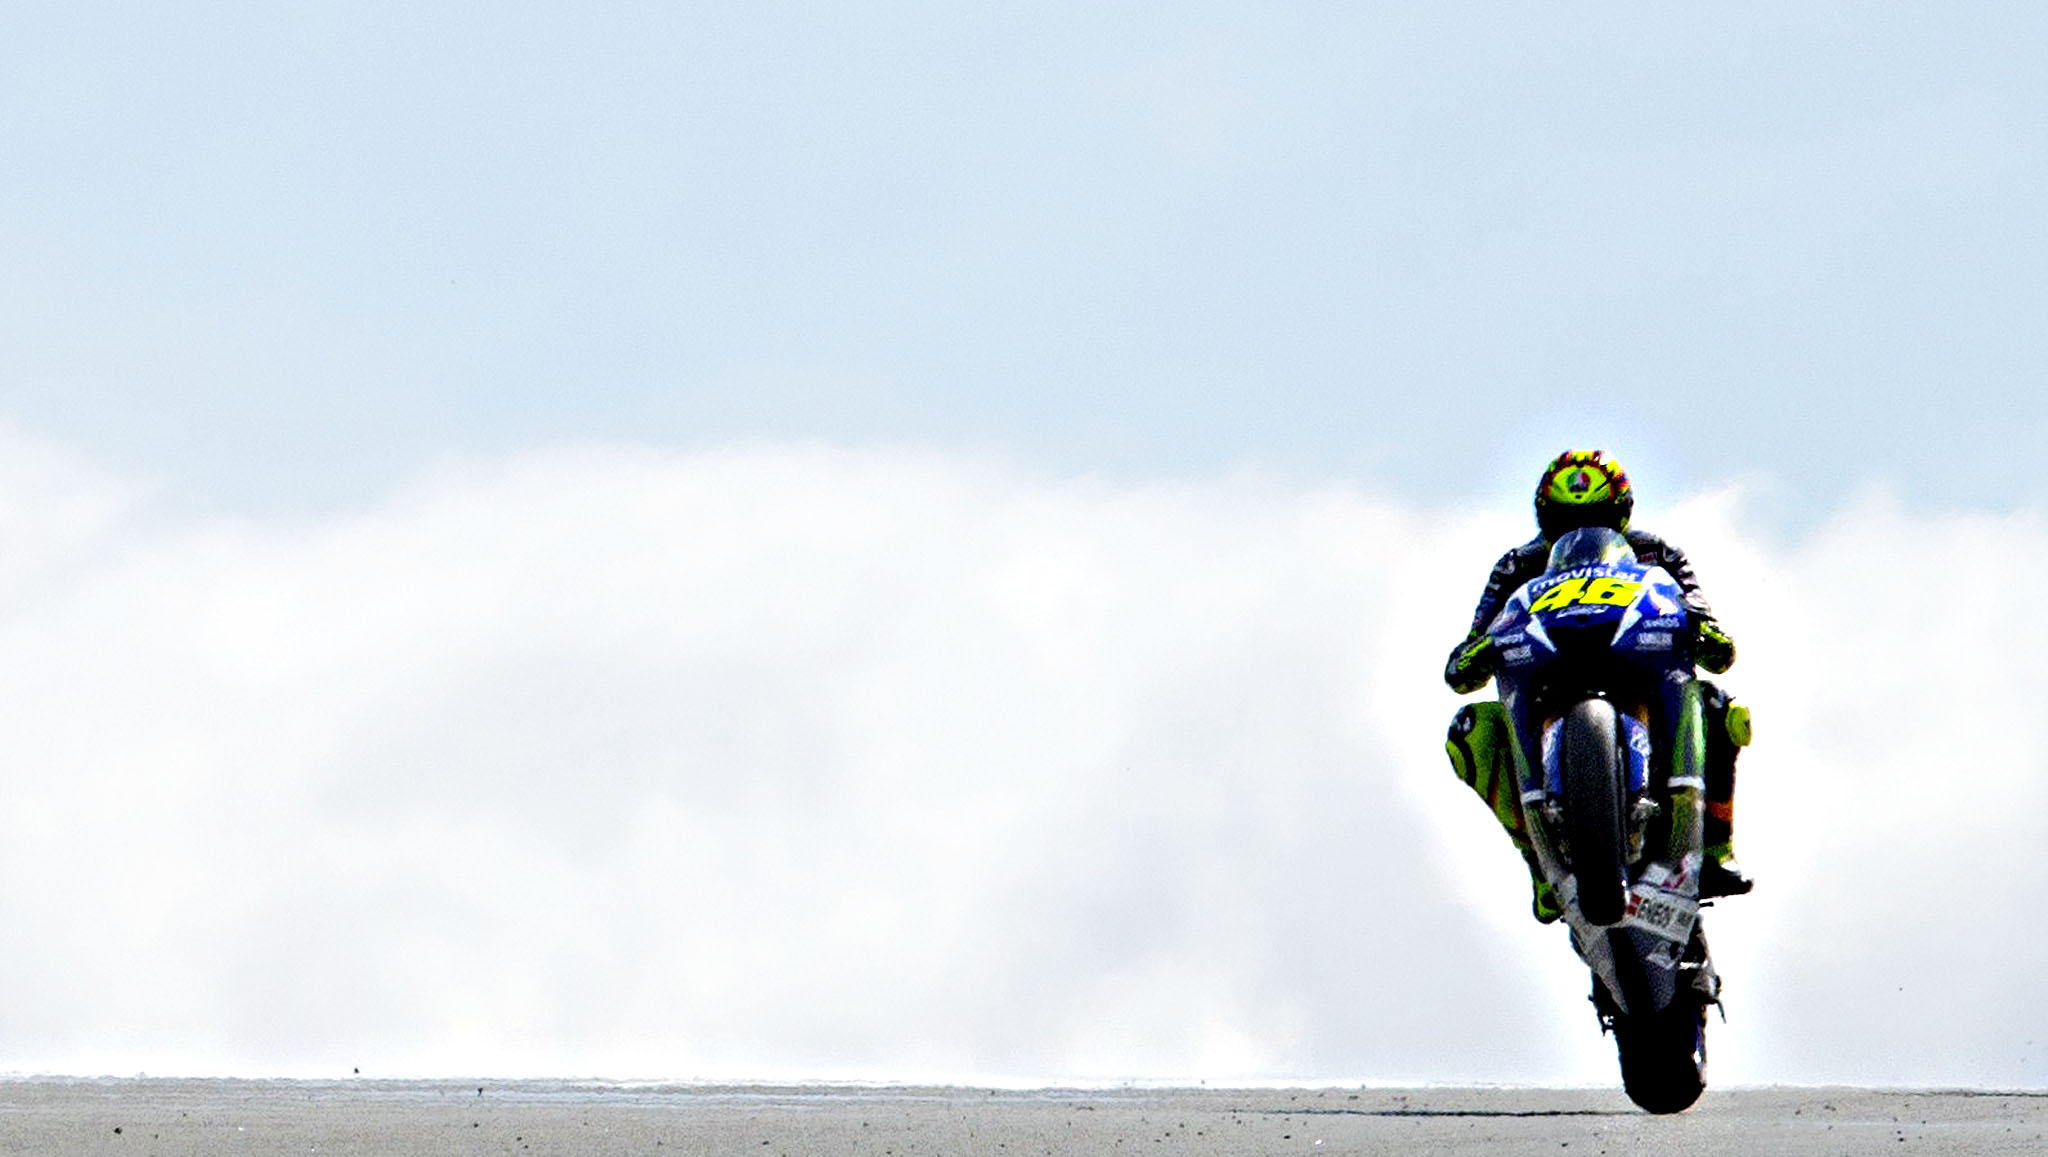 Yamaha rider Valentino Rossi of Italy pulls a wheelie during the first training session of the MotoGP Grand Prix of Germany at the Sachsenring Circuit on July 10, 2015 in Hohenstein-Ernstthal, eastern Germany.